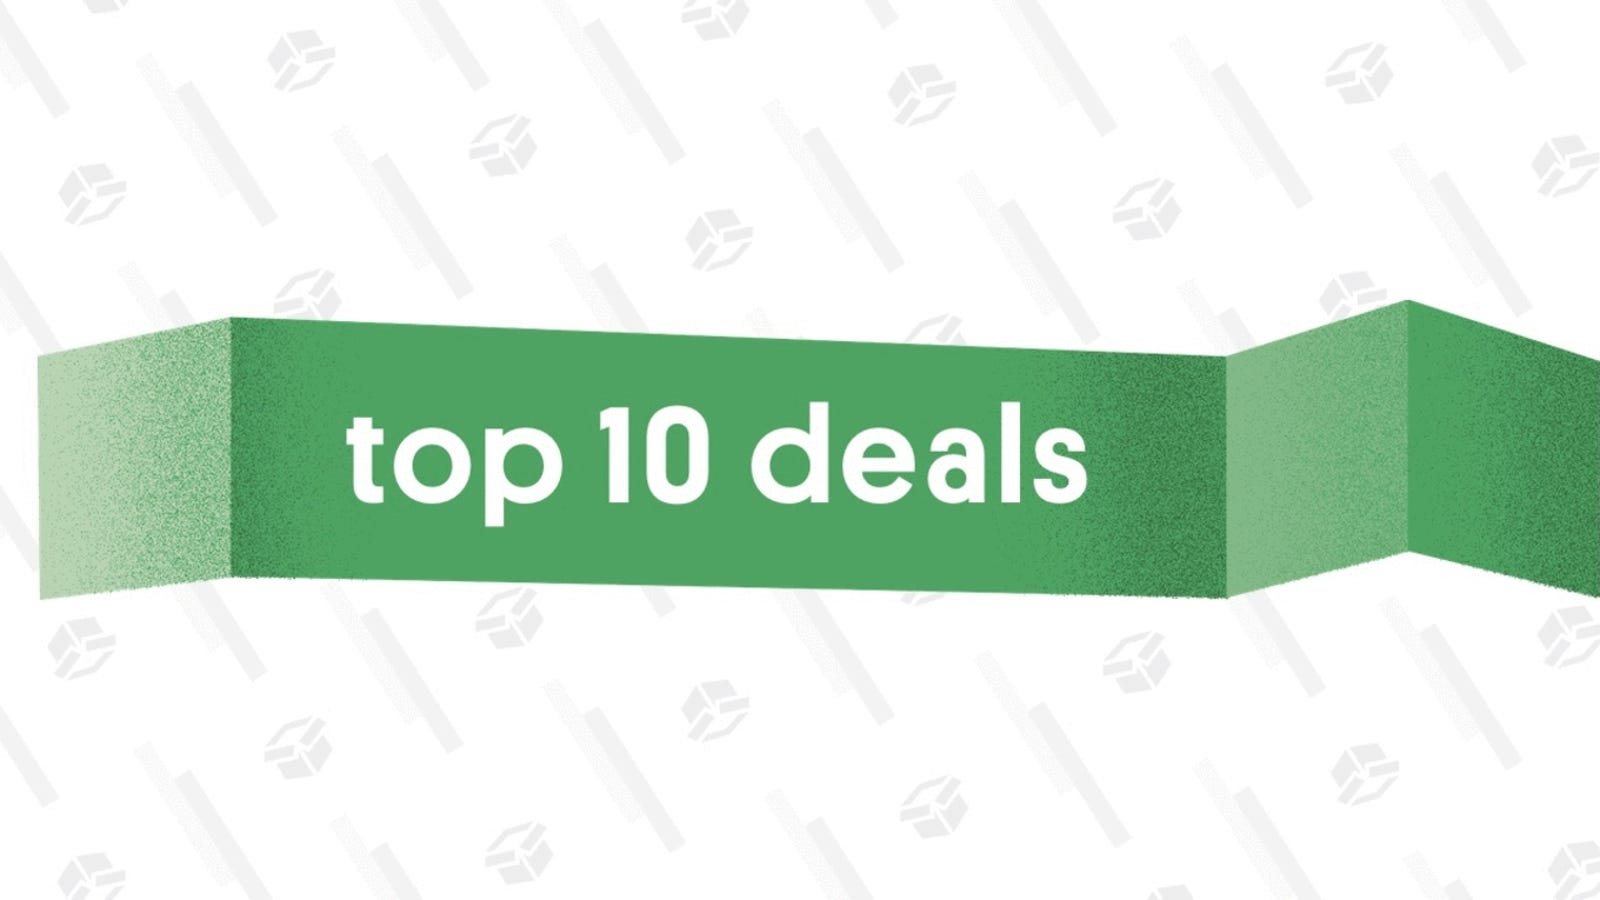 photo of The 10 Best Deals of May 15, 2019 image